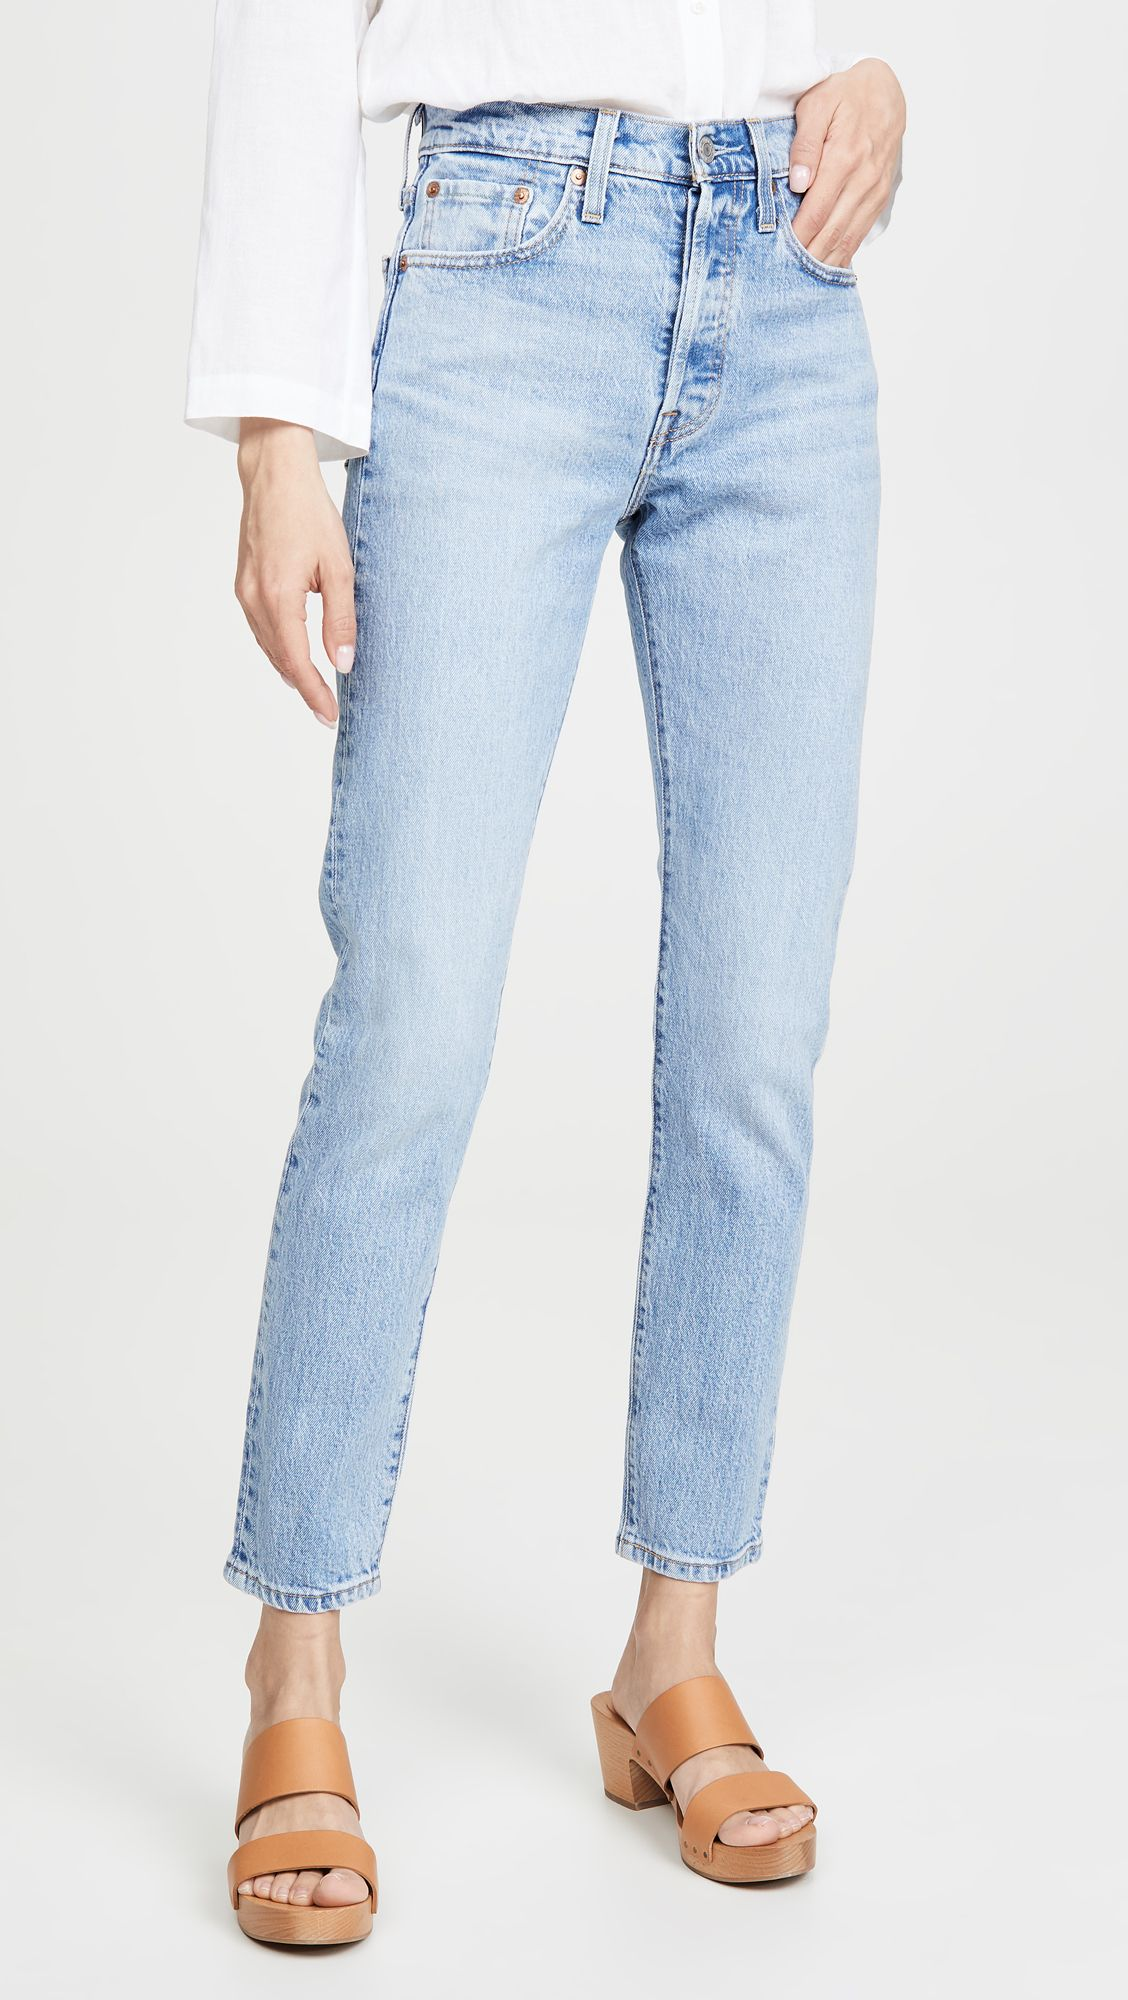 5 Issues Everyone Has With Skinny Jeans (and How to Fix Them) 8